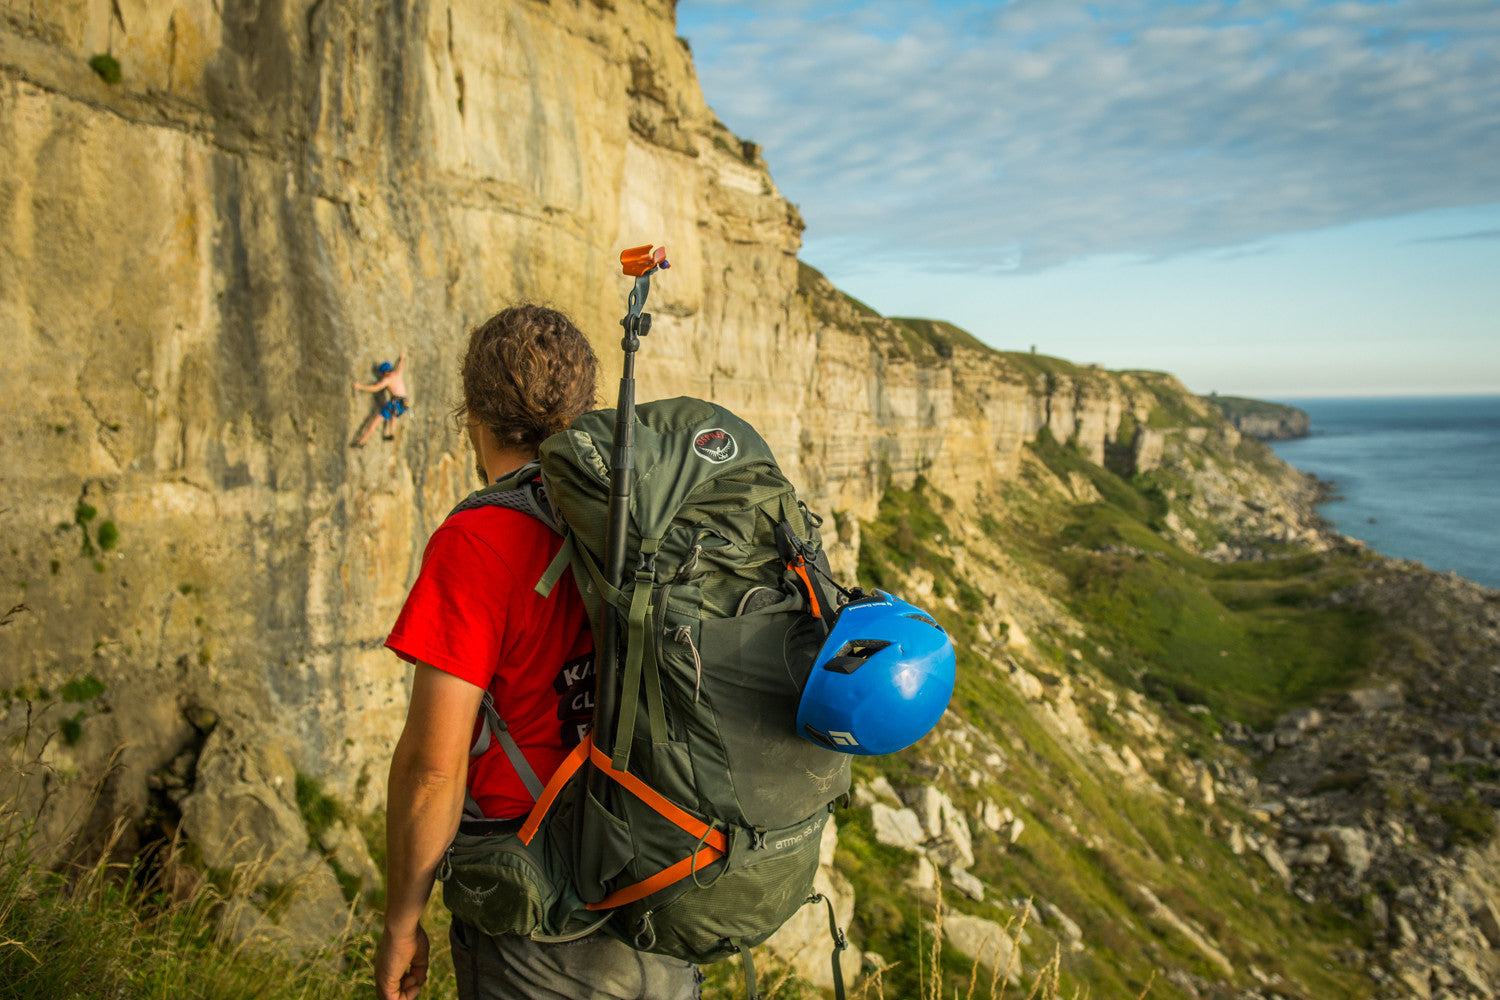 Pongoose Climber 700 featured attached to Osprey back pack at climbing area Blacknor, Portland, UK, with cliffs and blue sea in background.